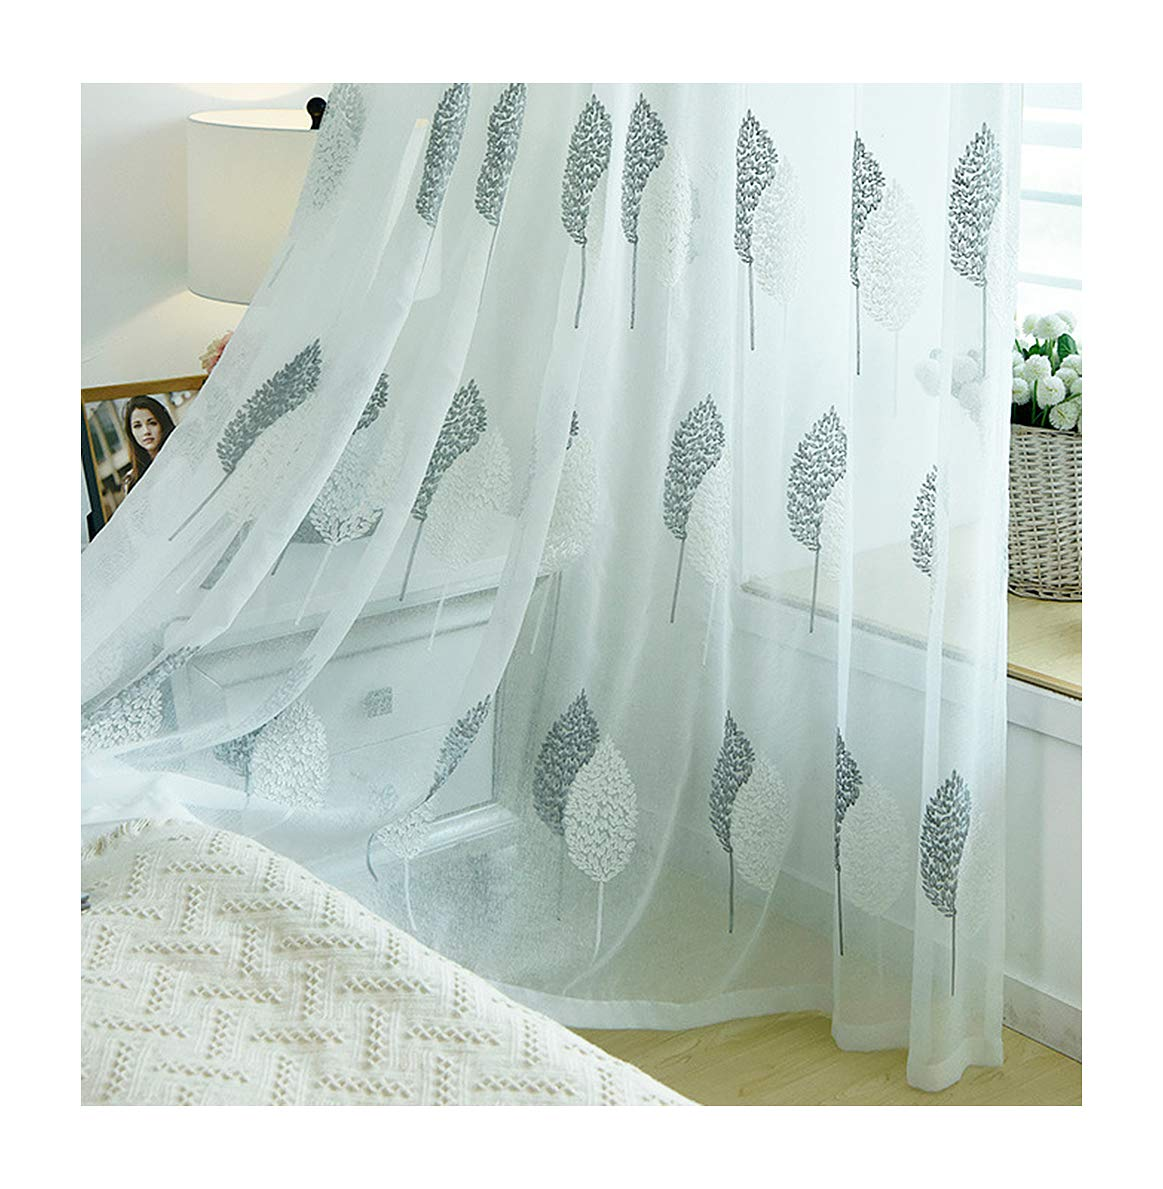 Aside Bside Sheer Curtains Vintage Style Rod Pocket Top Twin Trees Knitting Transparent Window Decoration Houseroom Kitchen Sitting Room (1 Panel, W 50 x L 84 inch, White)